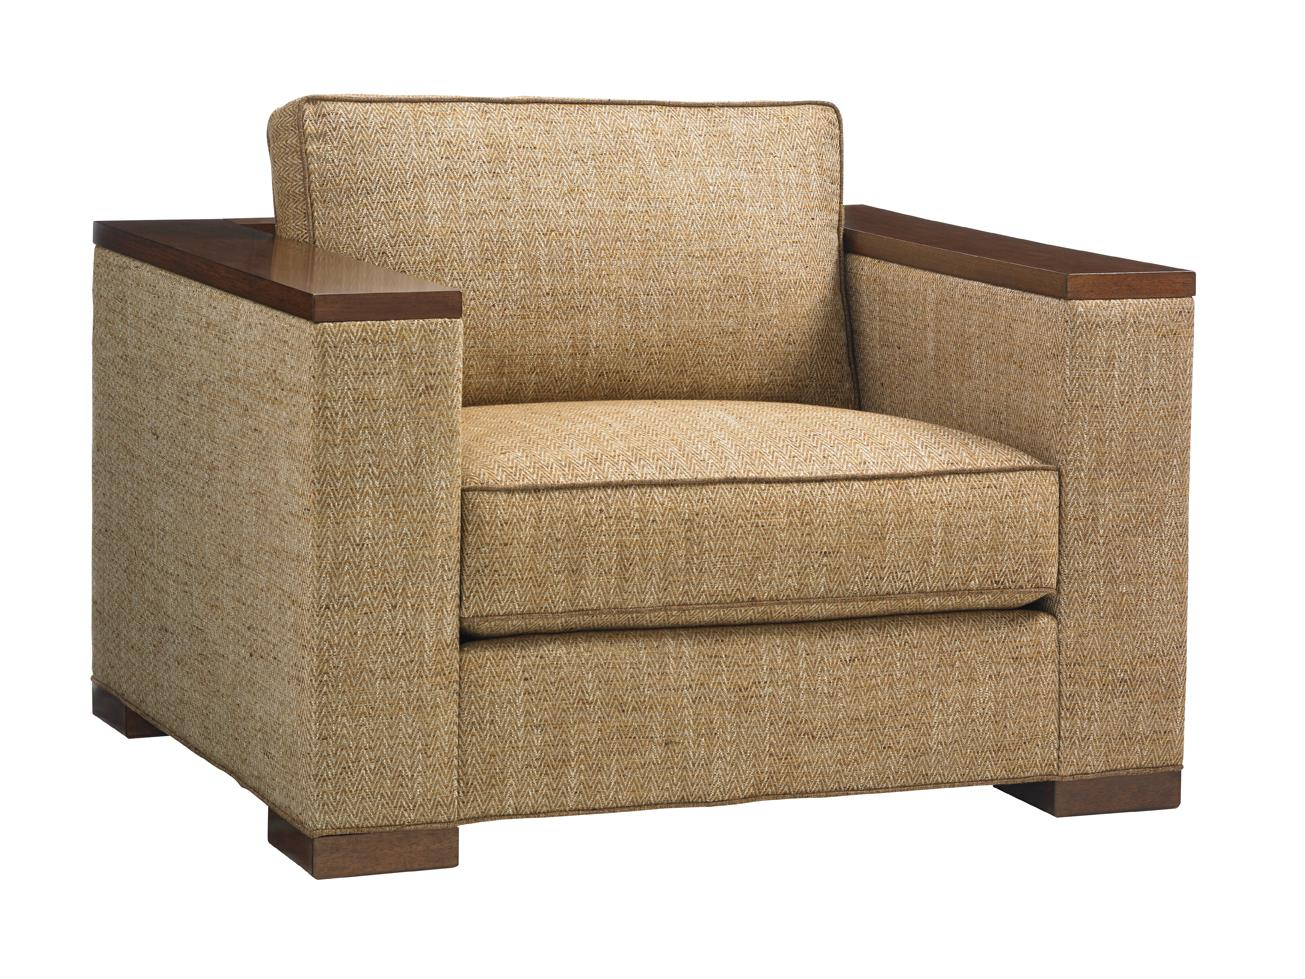 Island Fusion Fuji Chair by Tommy Bahama Home at Baer's Furniture